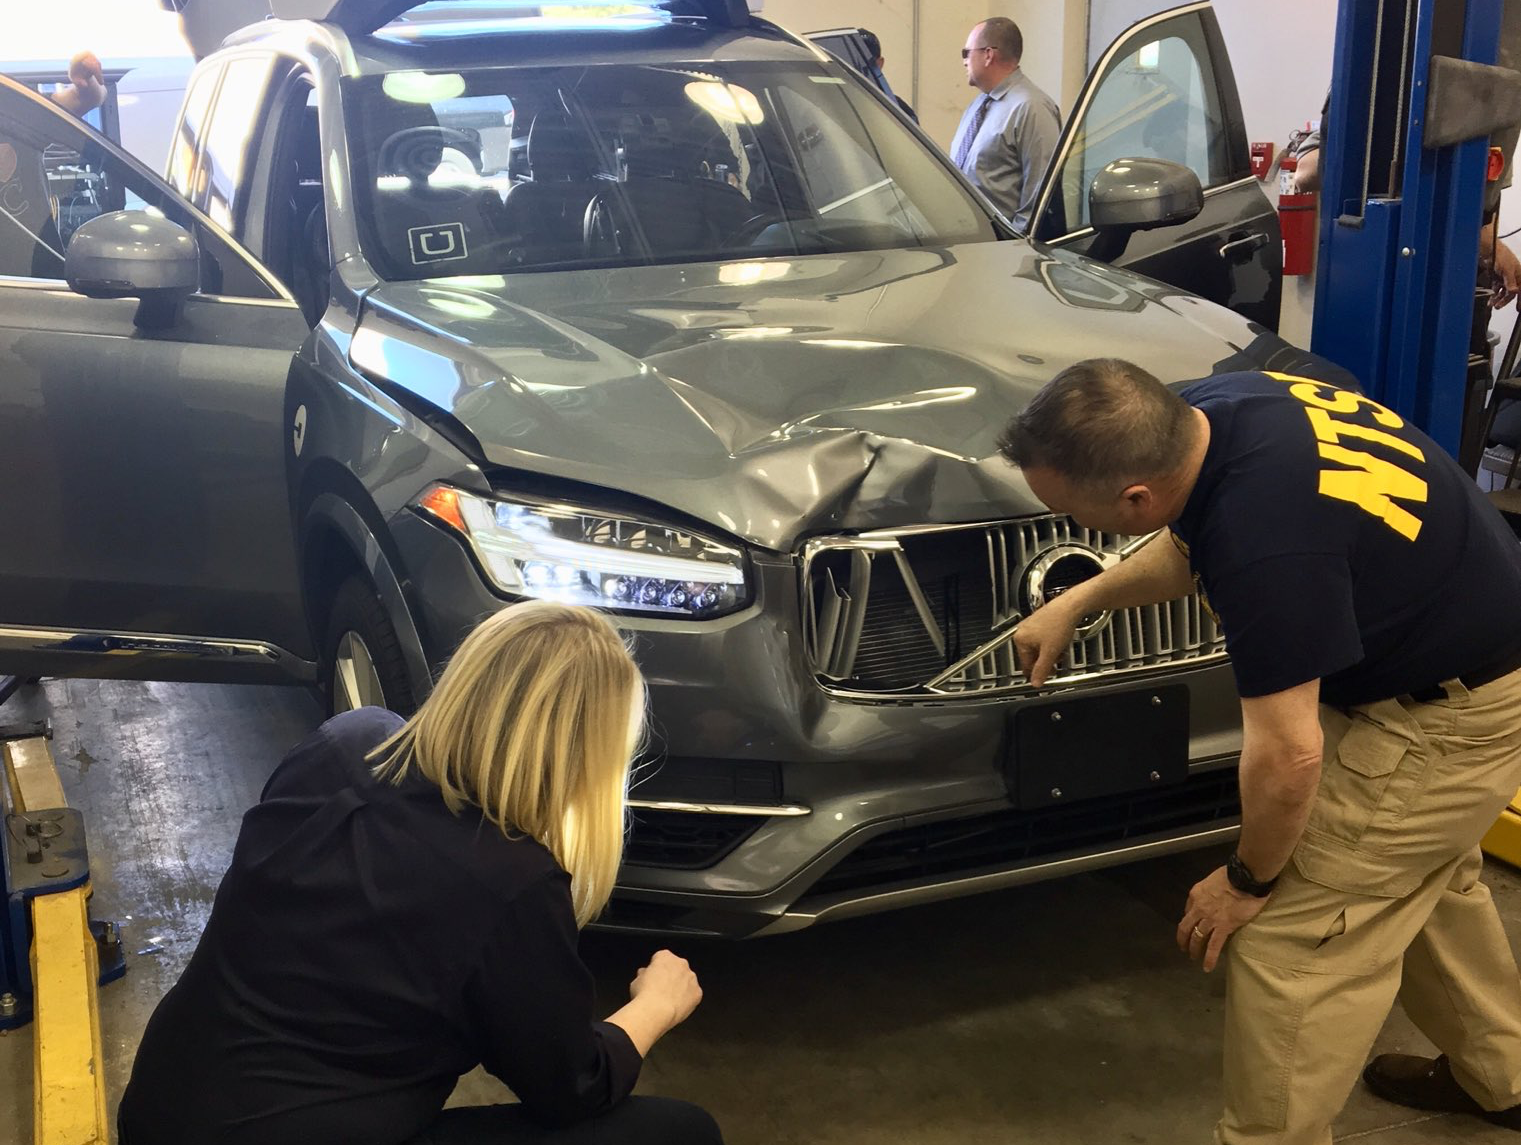 Report: Software bug led to death in Uber\'s self-driving crash | Ars ...